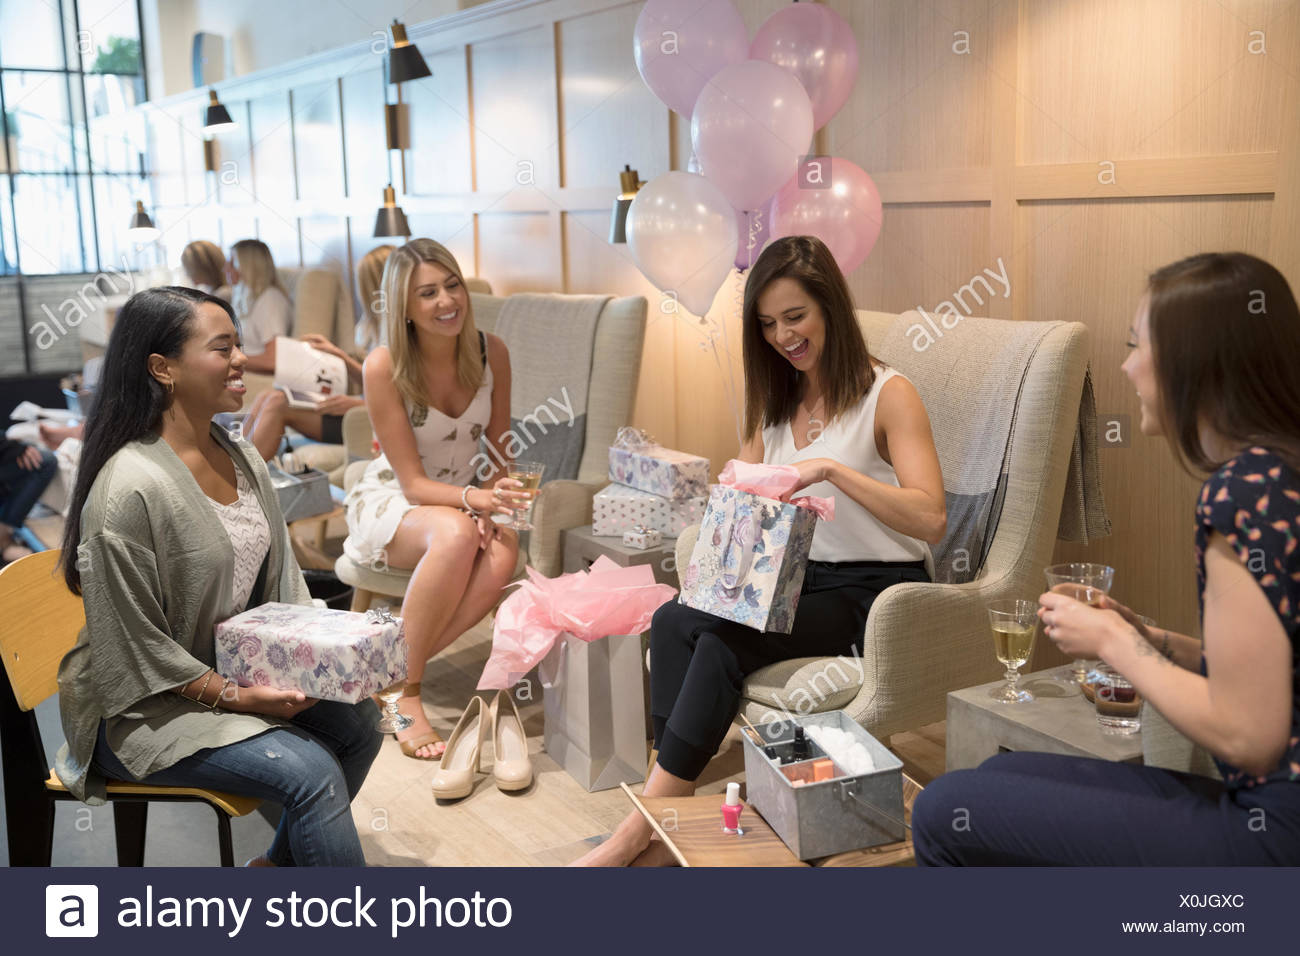 bride to be and bridesmaid friends opening gifts at bridal shower in nail salon